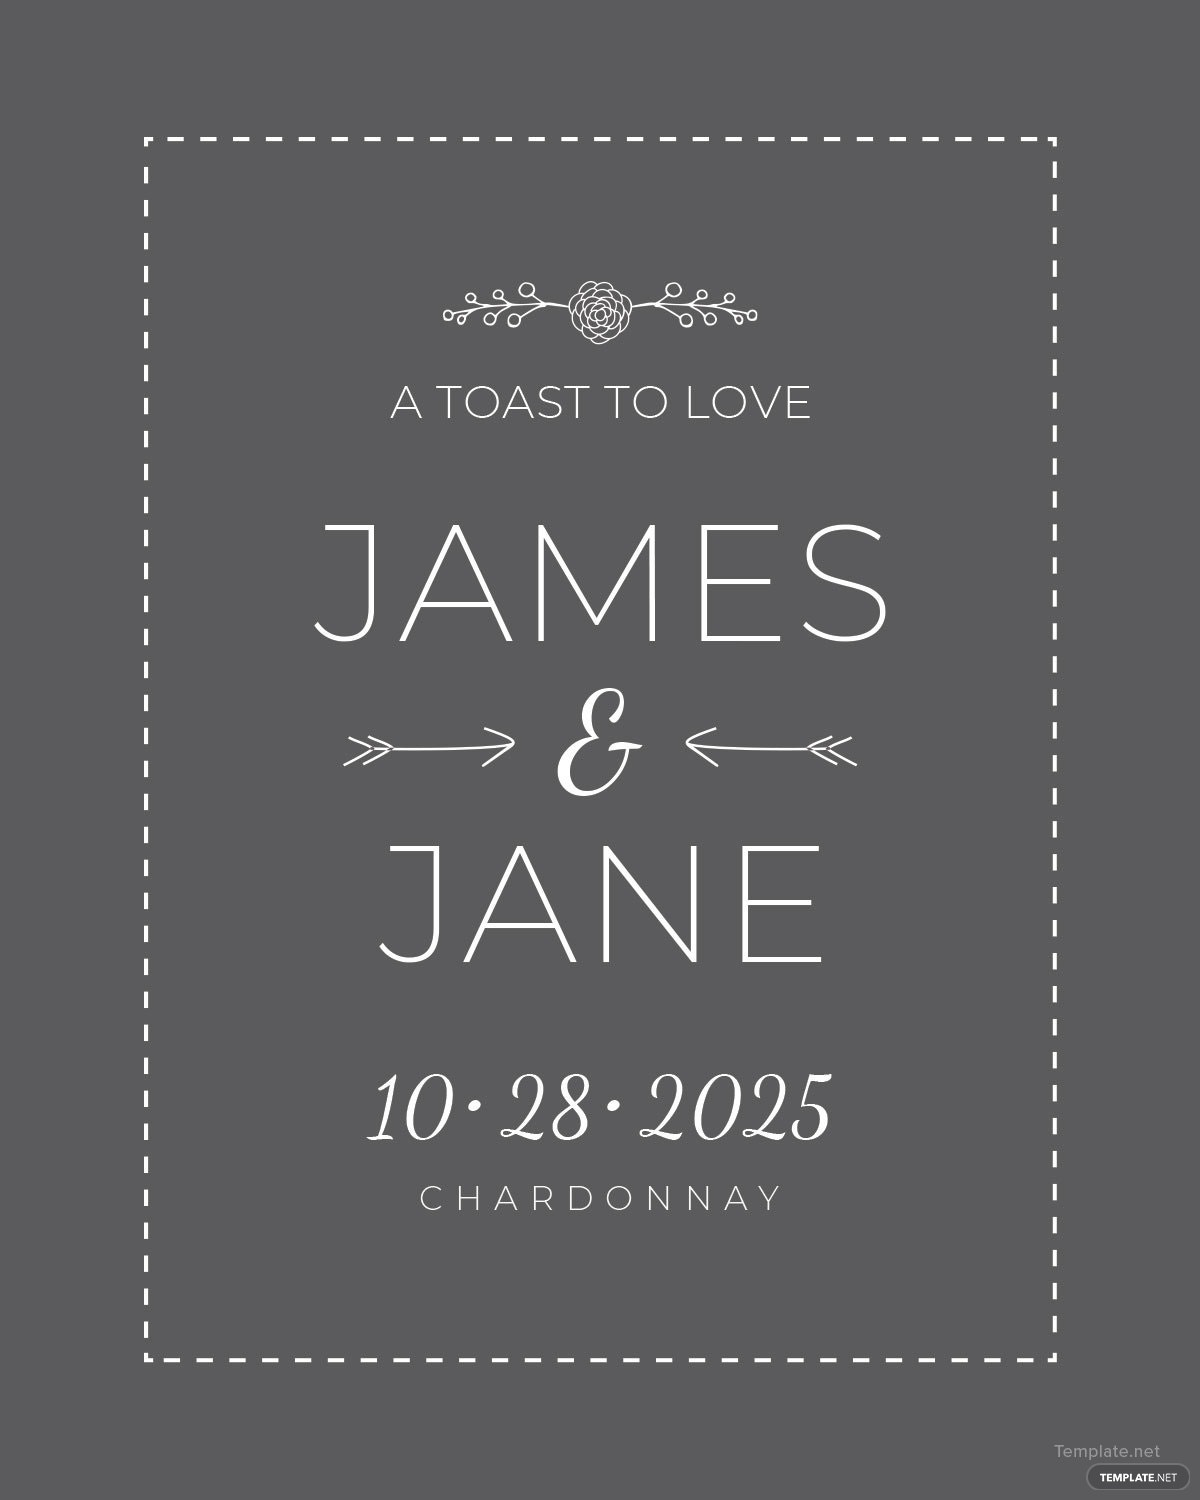 Free Wedding Champagne Bottle Label Template in Microsoft Word ...